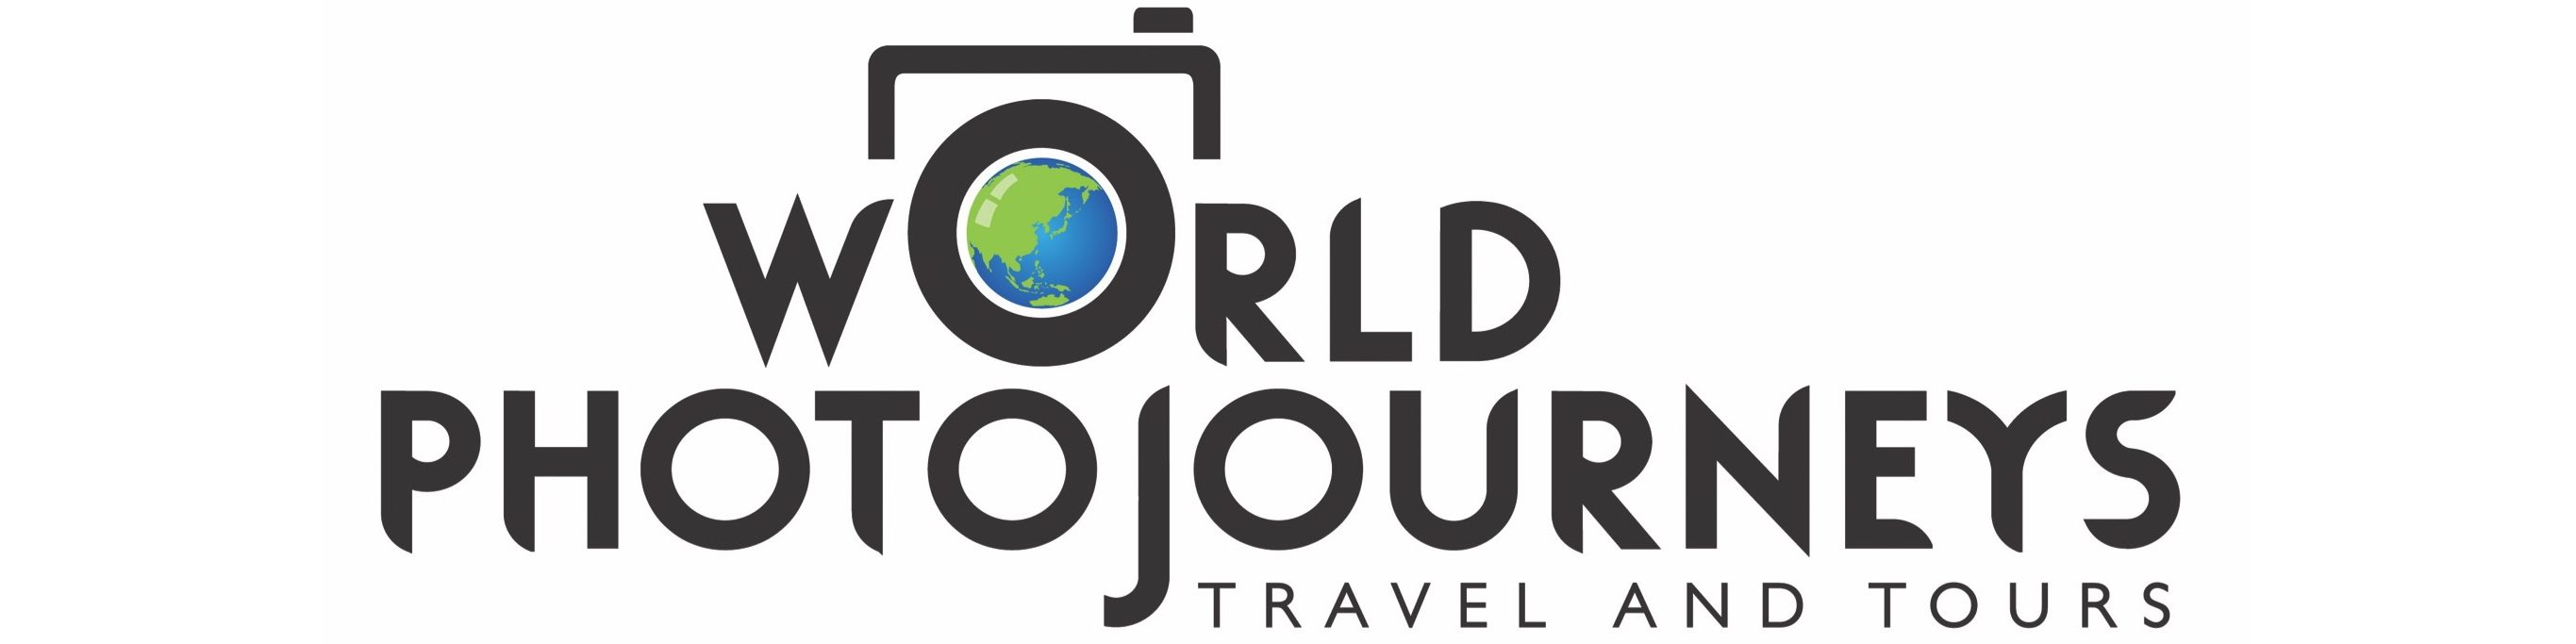 World PhotoJourneys